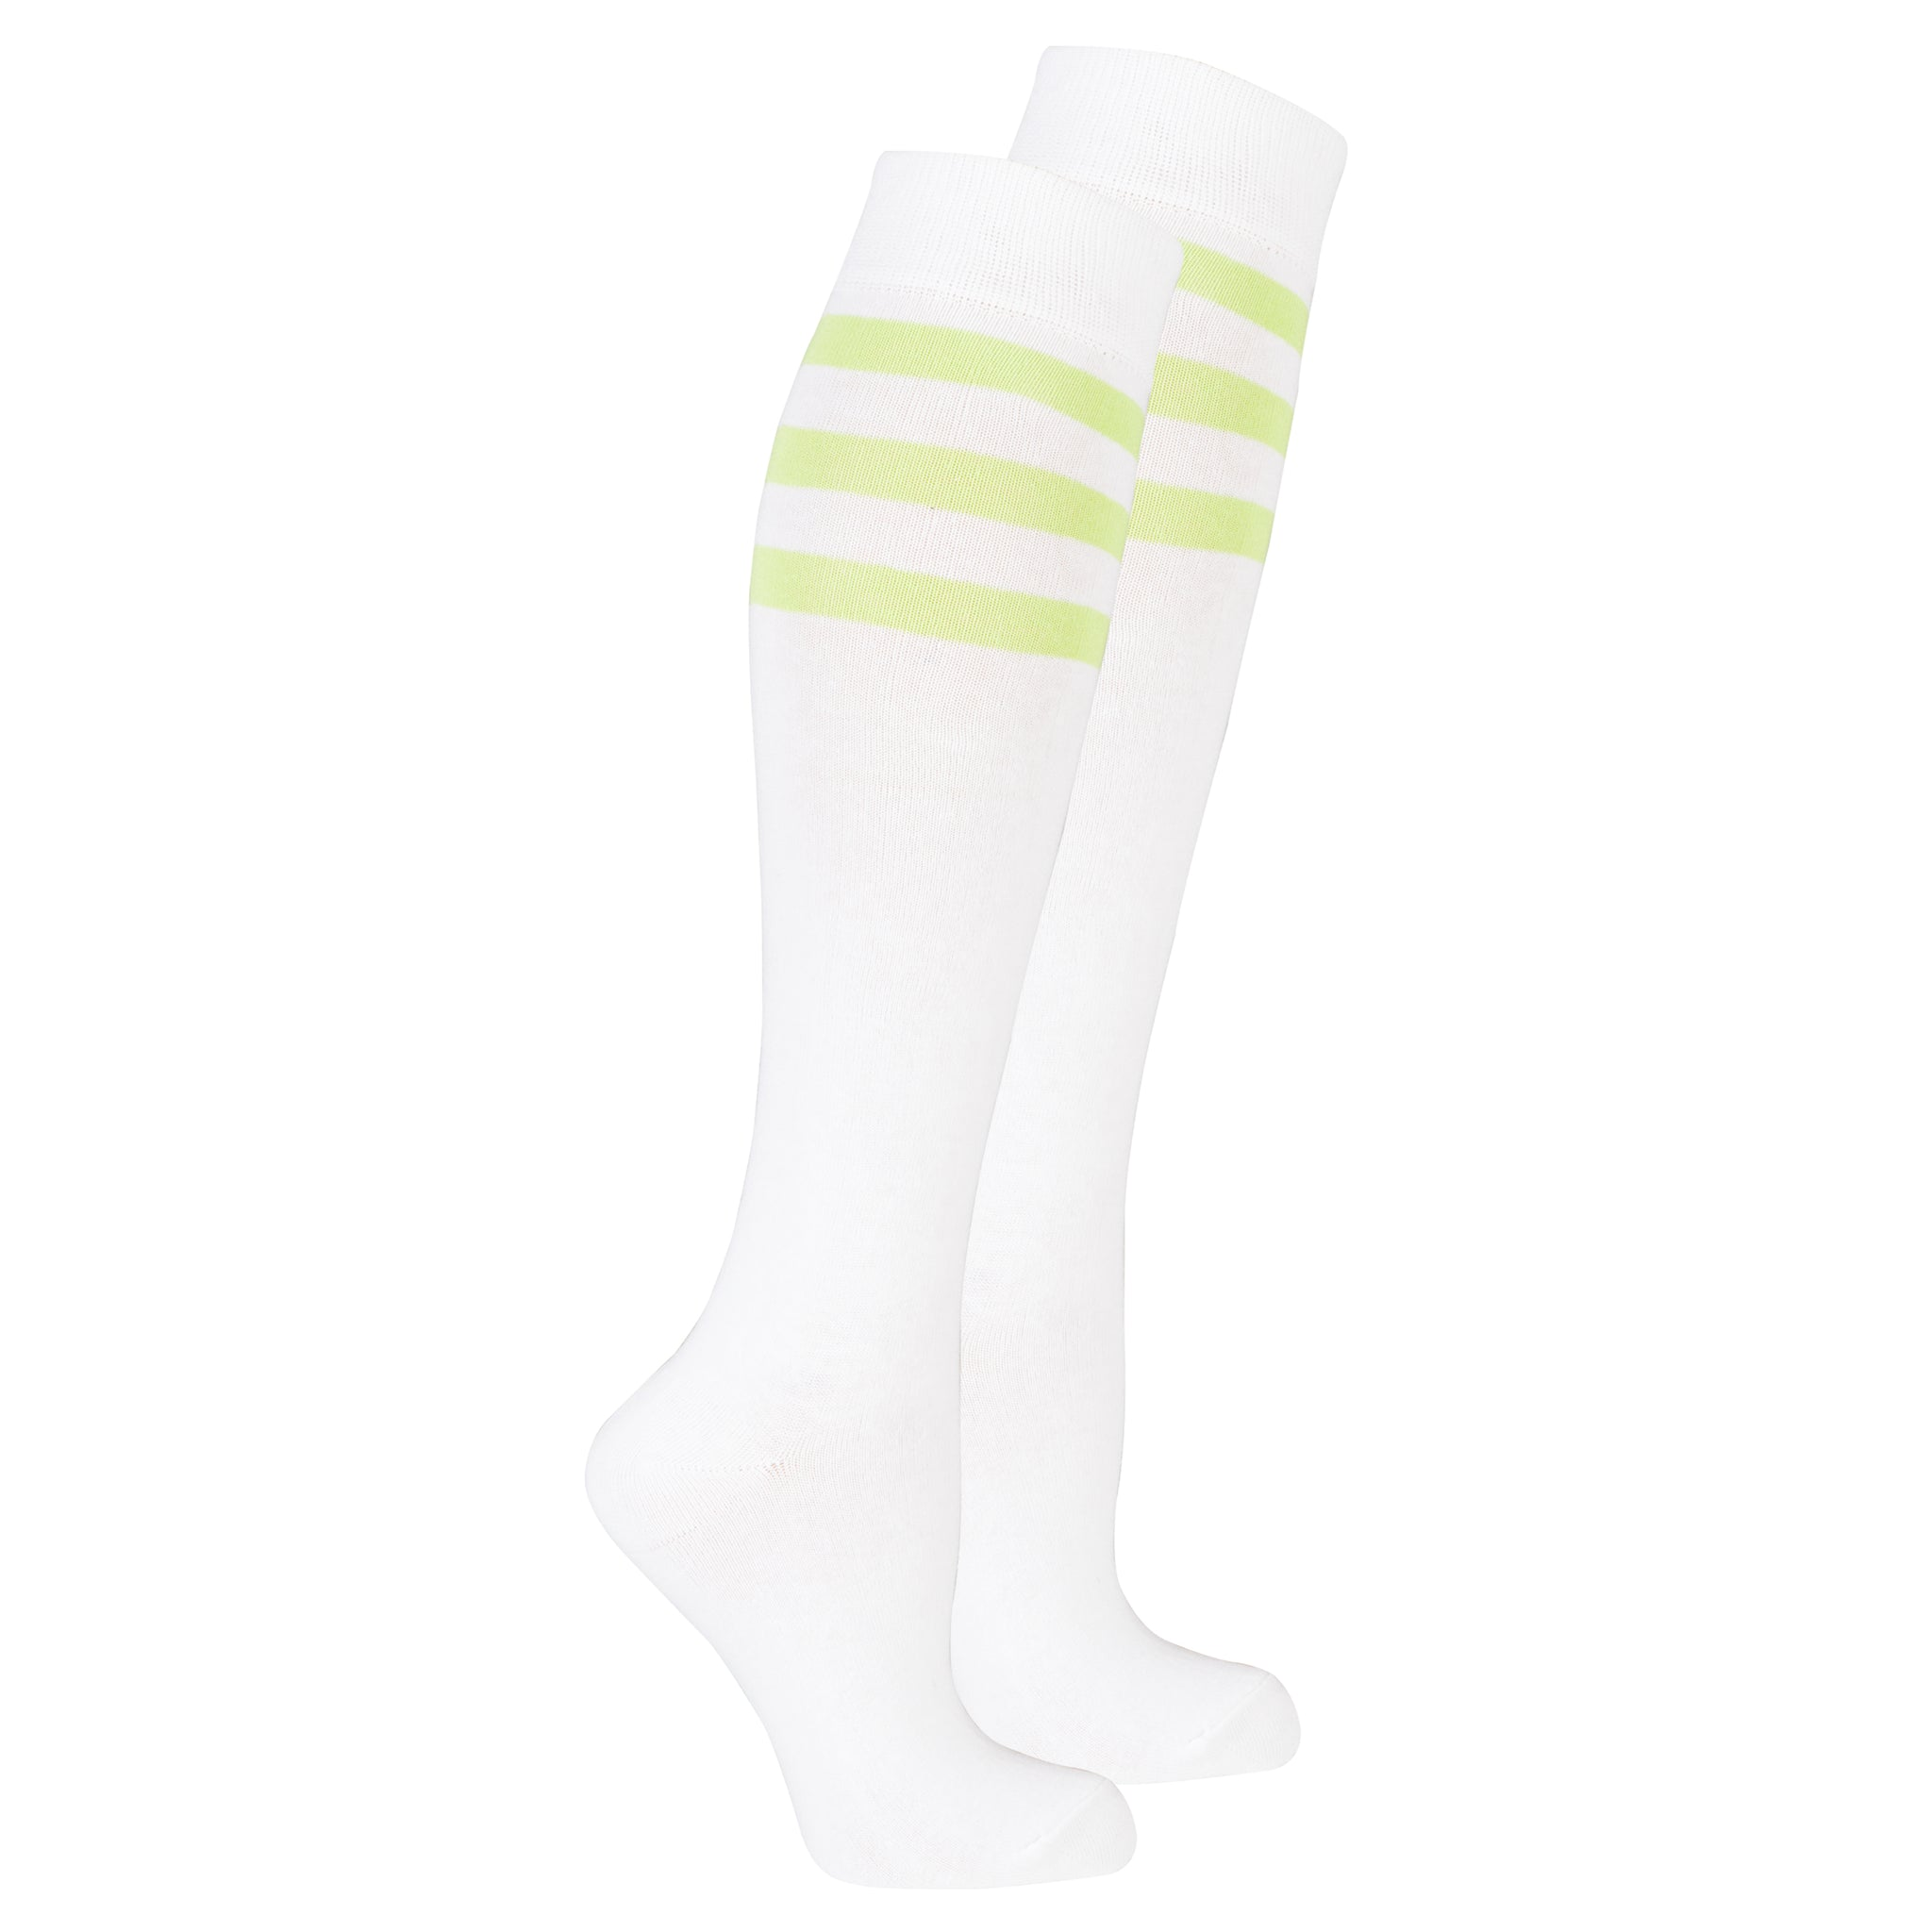 Women's Solid Green Stripe Knee High Socks